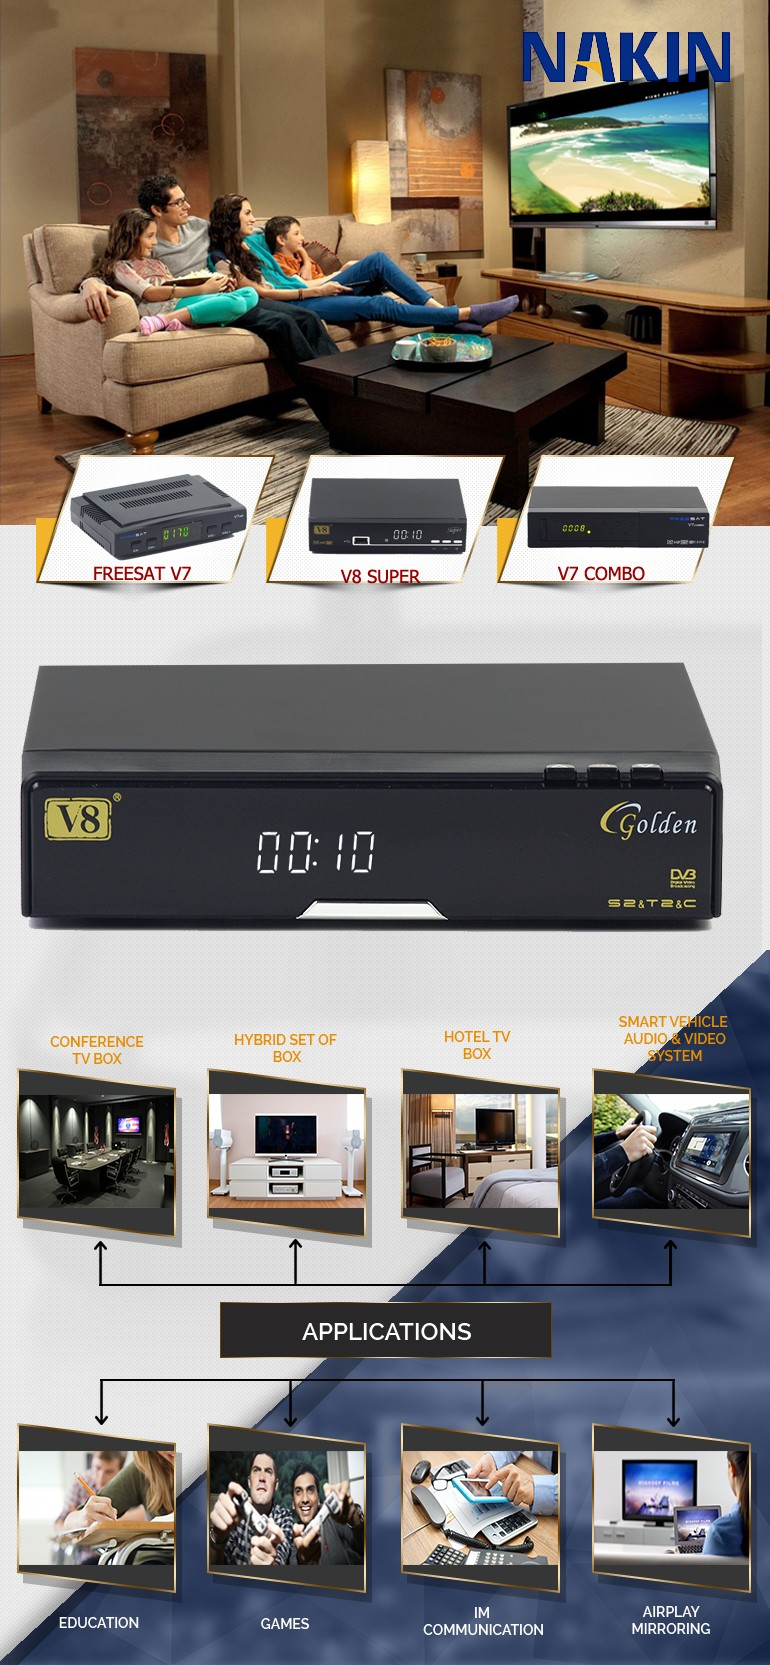 Free To Air Satellite Decoders V8 Golden K1 Plus Dvb S2 Dvb T2 Set Top Box  Mpeg2 Dvb-t2 Modulator - Buy K1 Plus Dvb S2 Dvb T2,Mpeg2 Dvb-t2